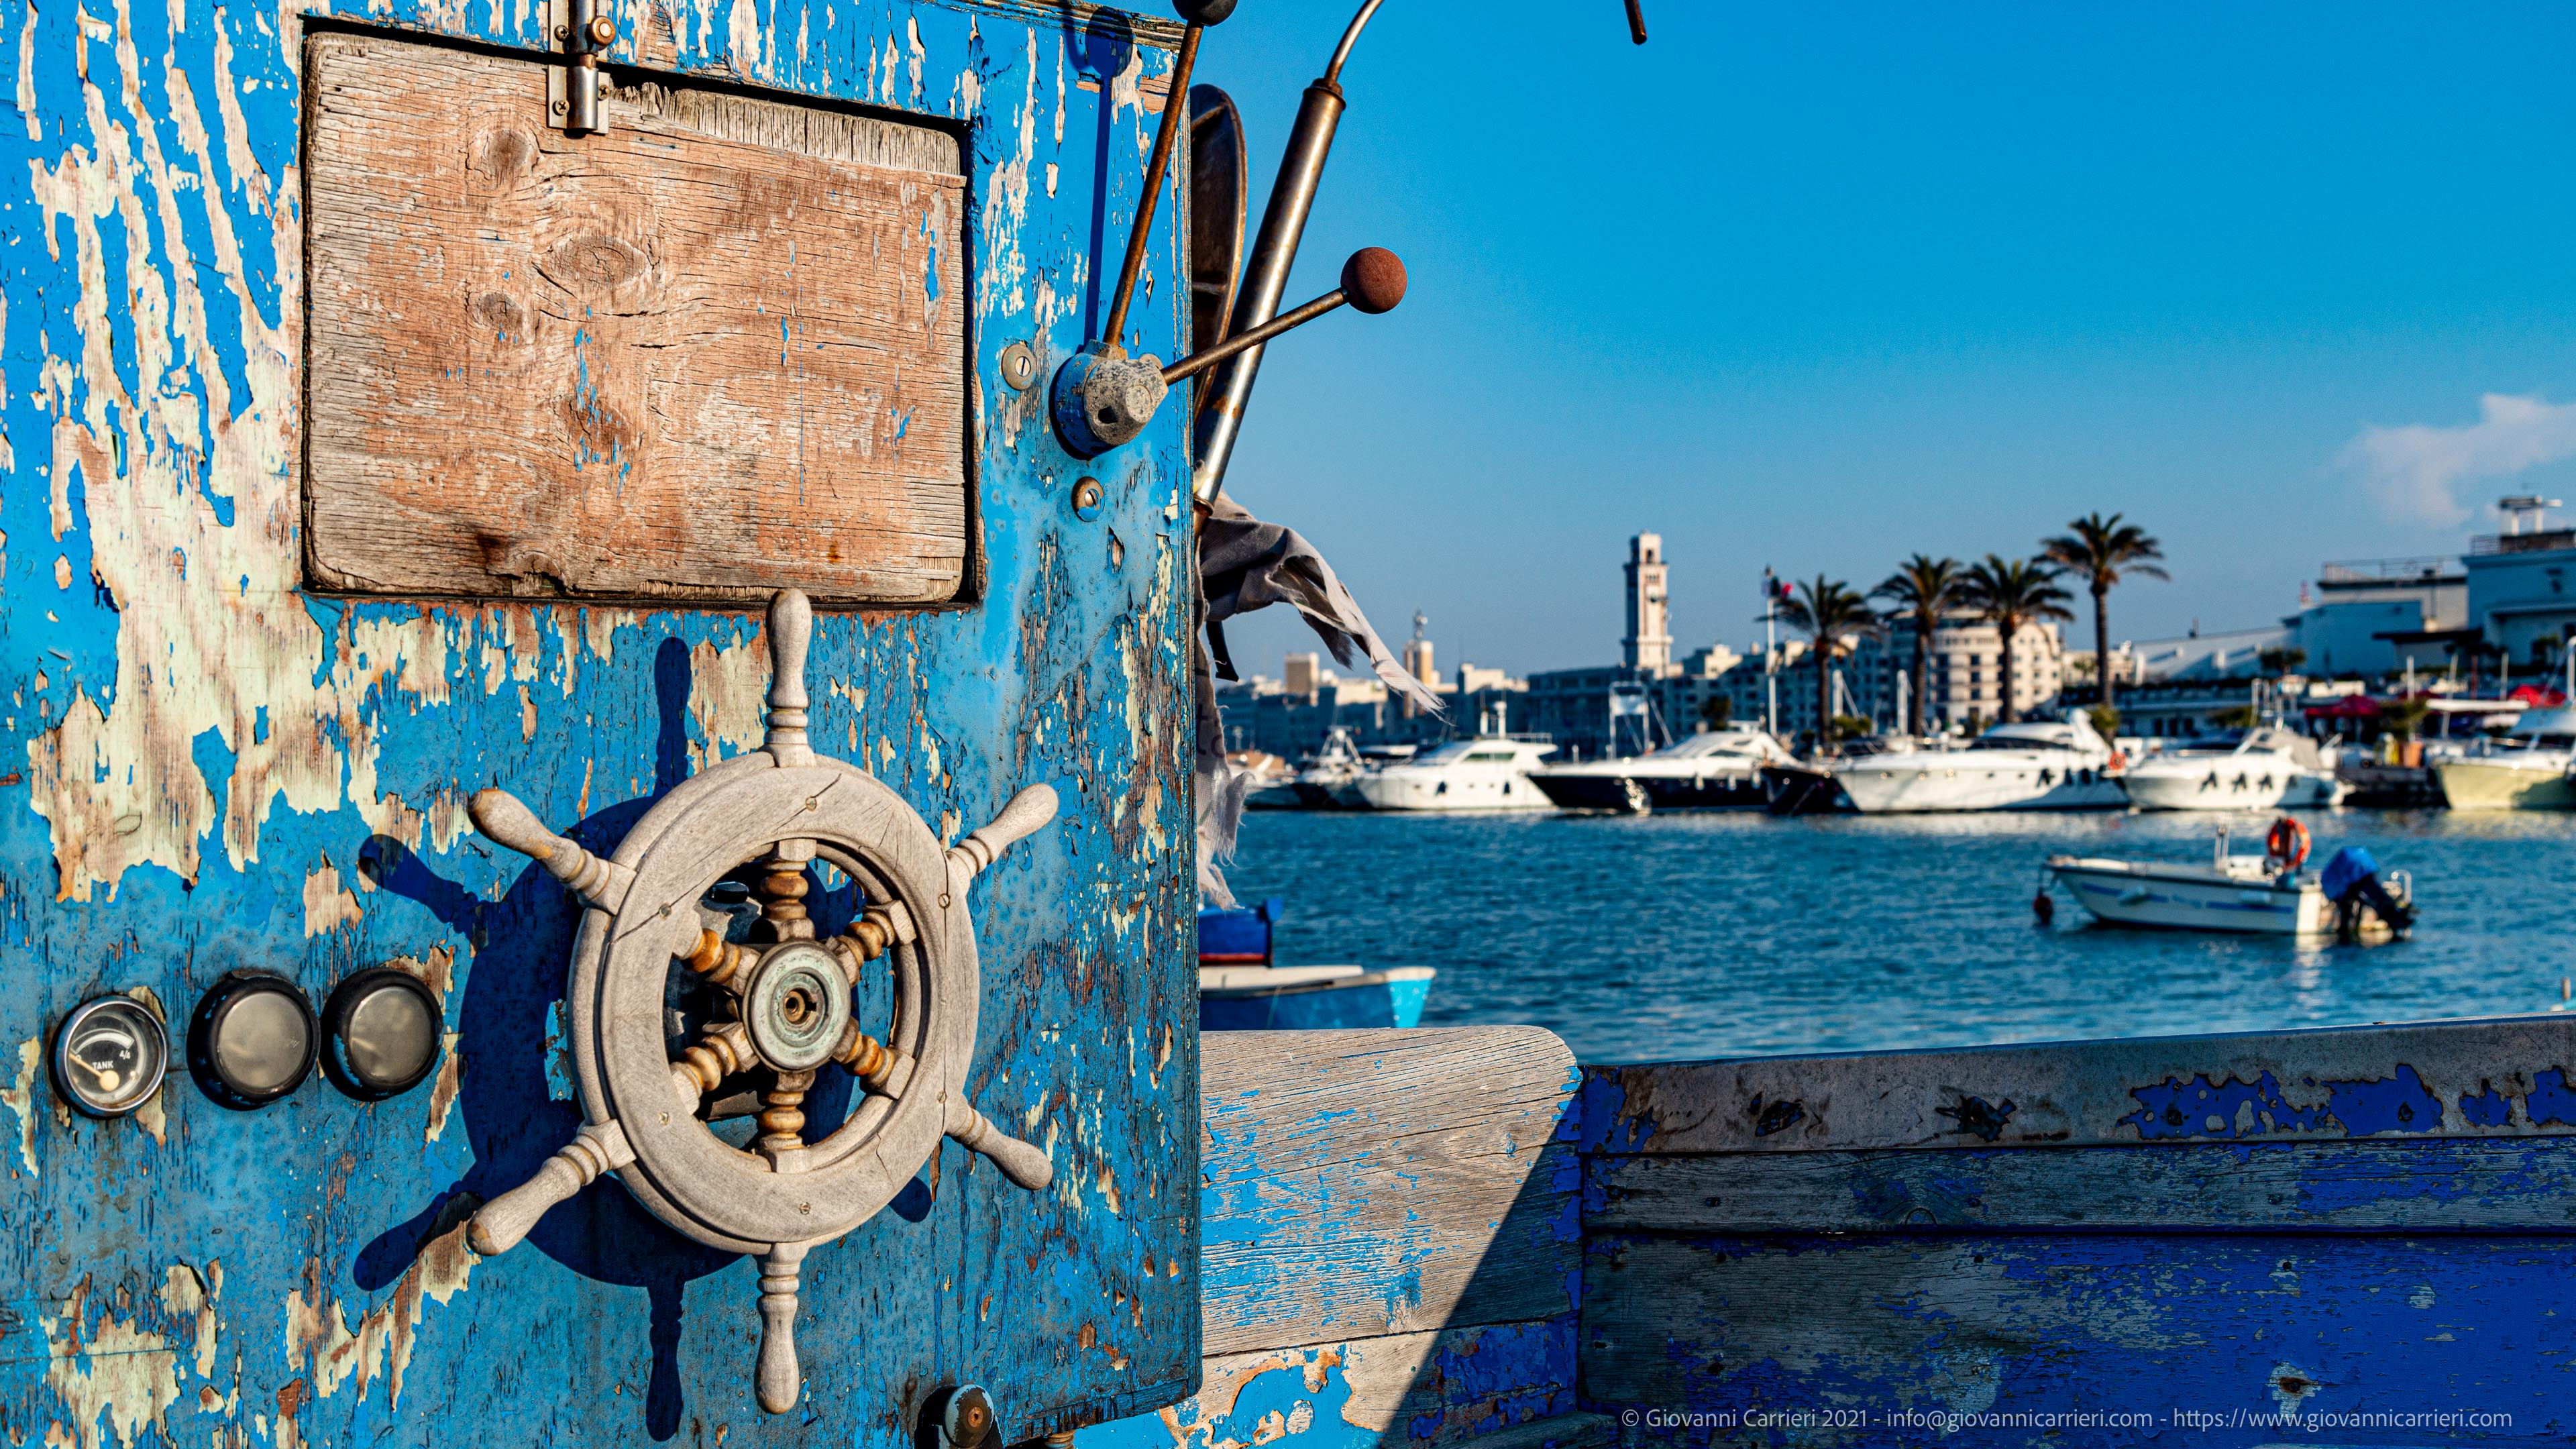 The abandoned wrecks on the waterfront of Bari